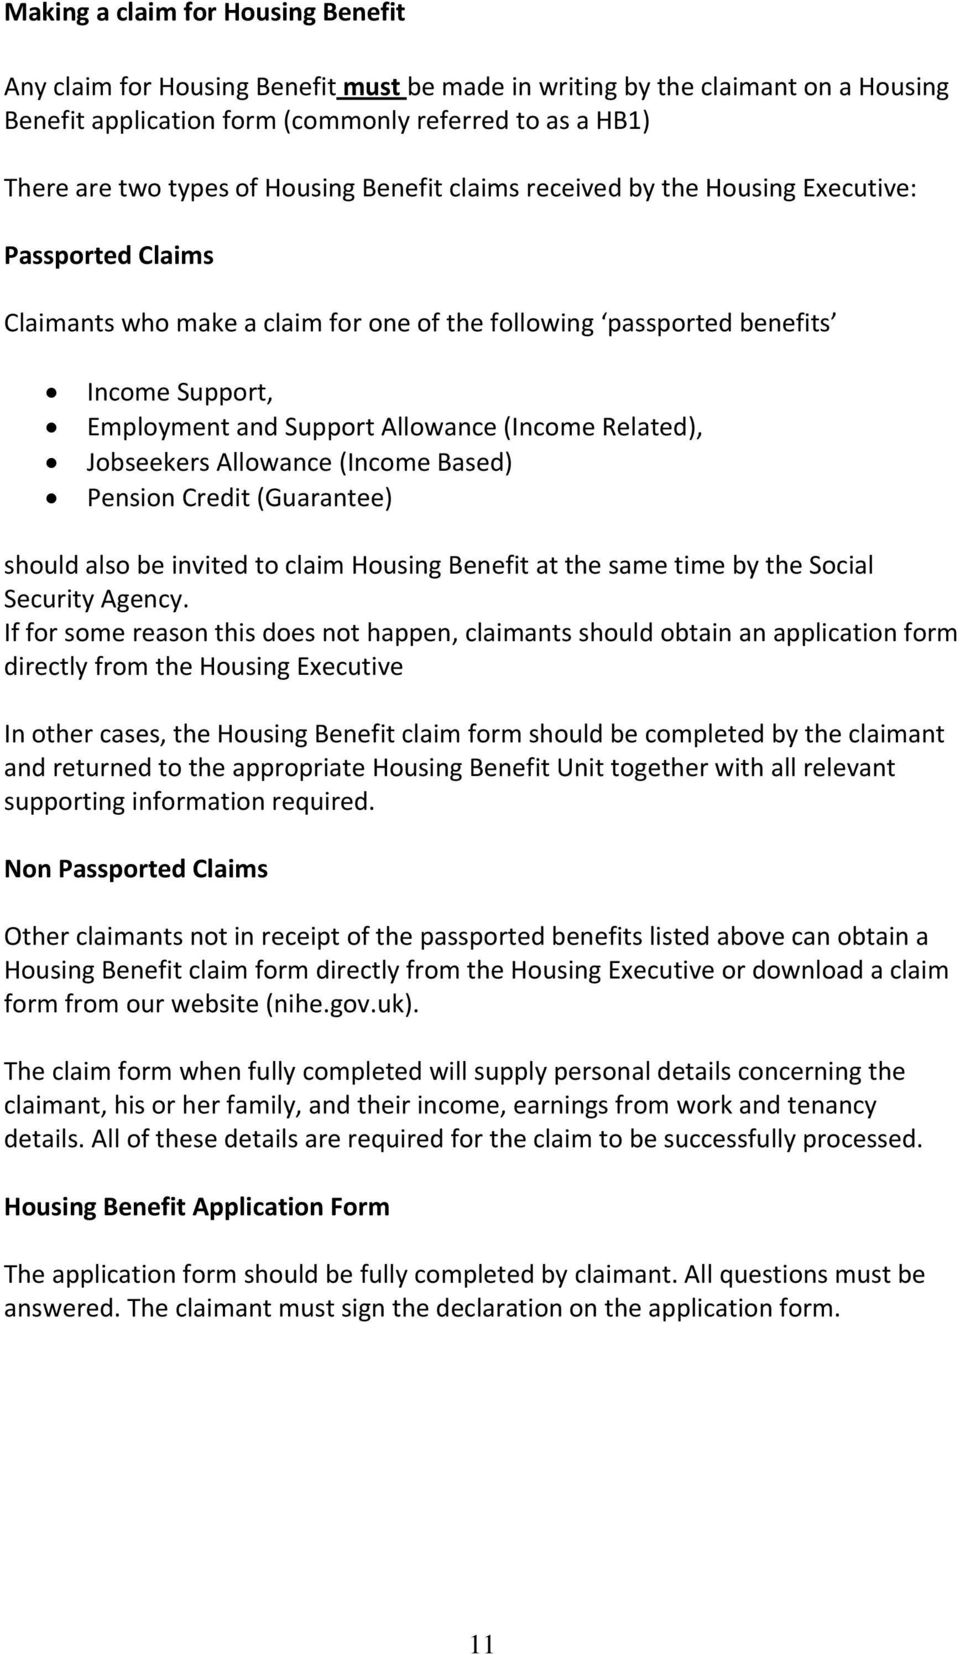 (Income Related), Jobseekers Allowance (Income Based) Pension Credit (Guarantee) should also be invited to claim Housing Benefit at the same time by the Social Security Agency.